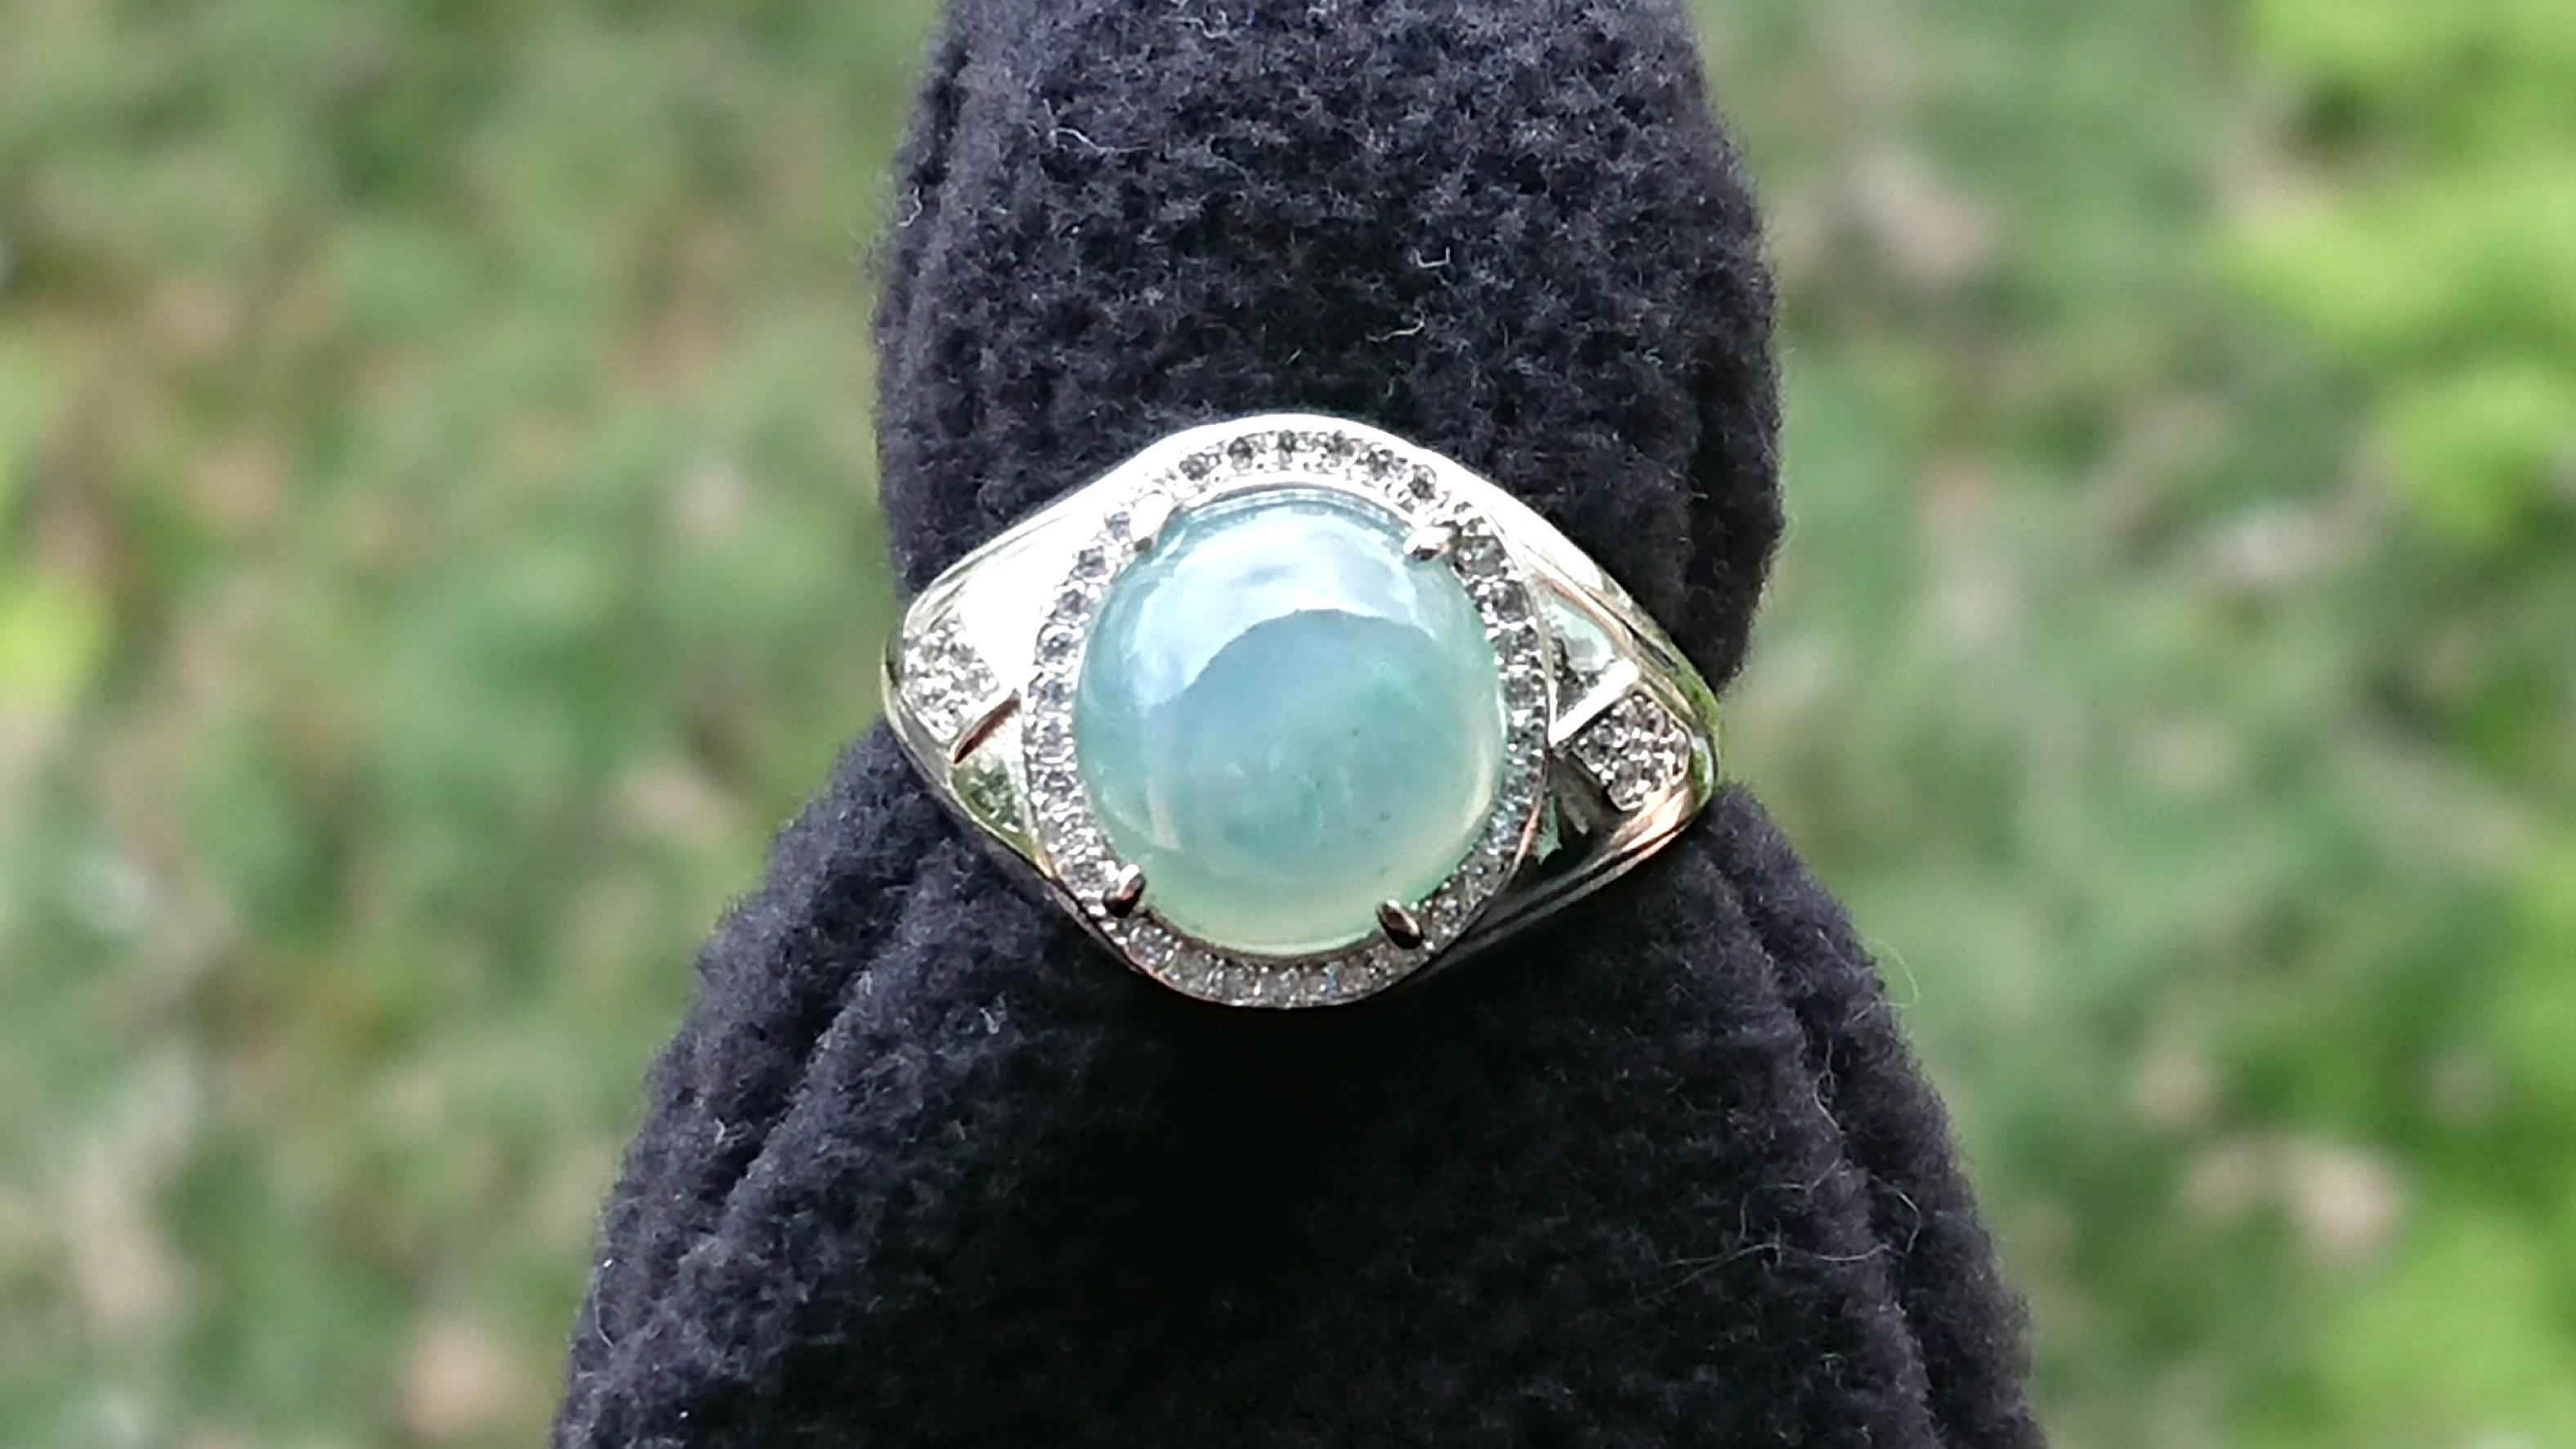 Jadeite, Jelly Translucent with Blue Including Type A Jade Cabochon on S925 Silver Men's Ring.起胶糯化飘蓝花缅甸玉翡翠旦面S925银男戒。